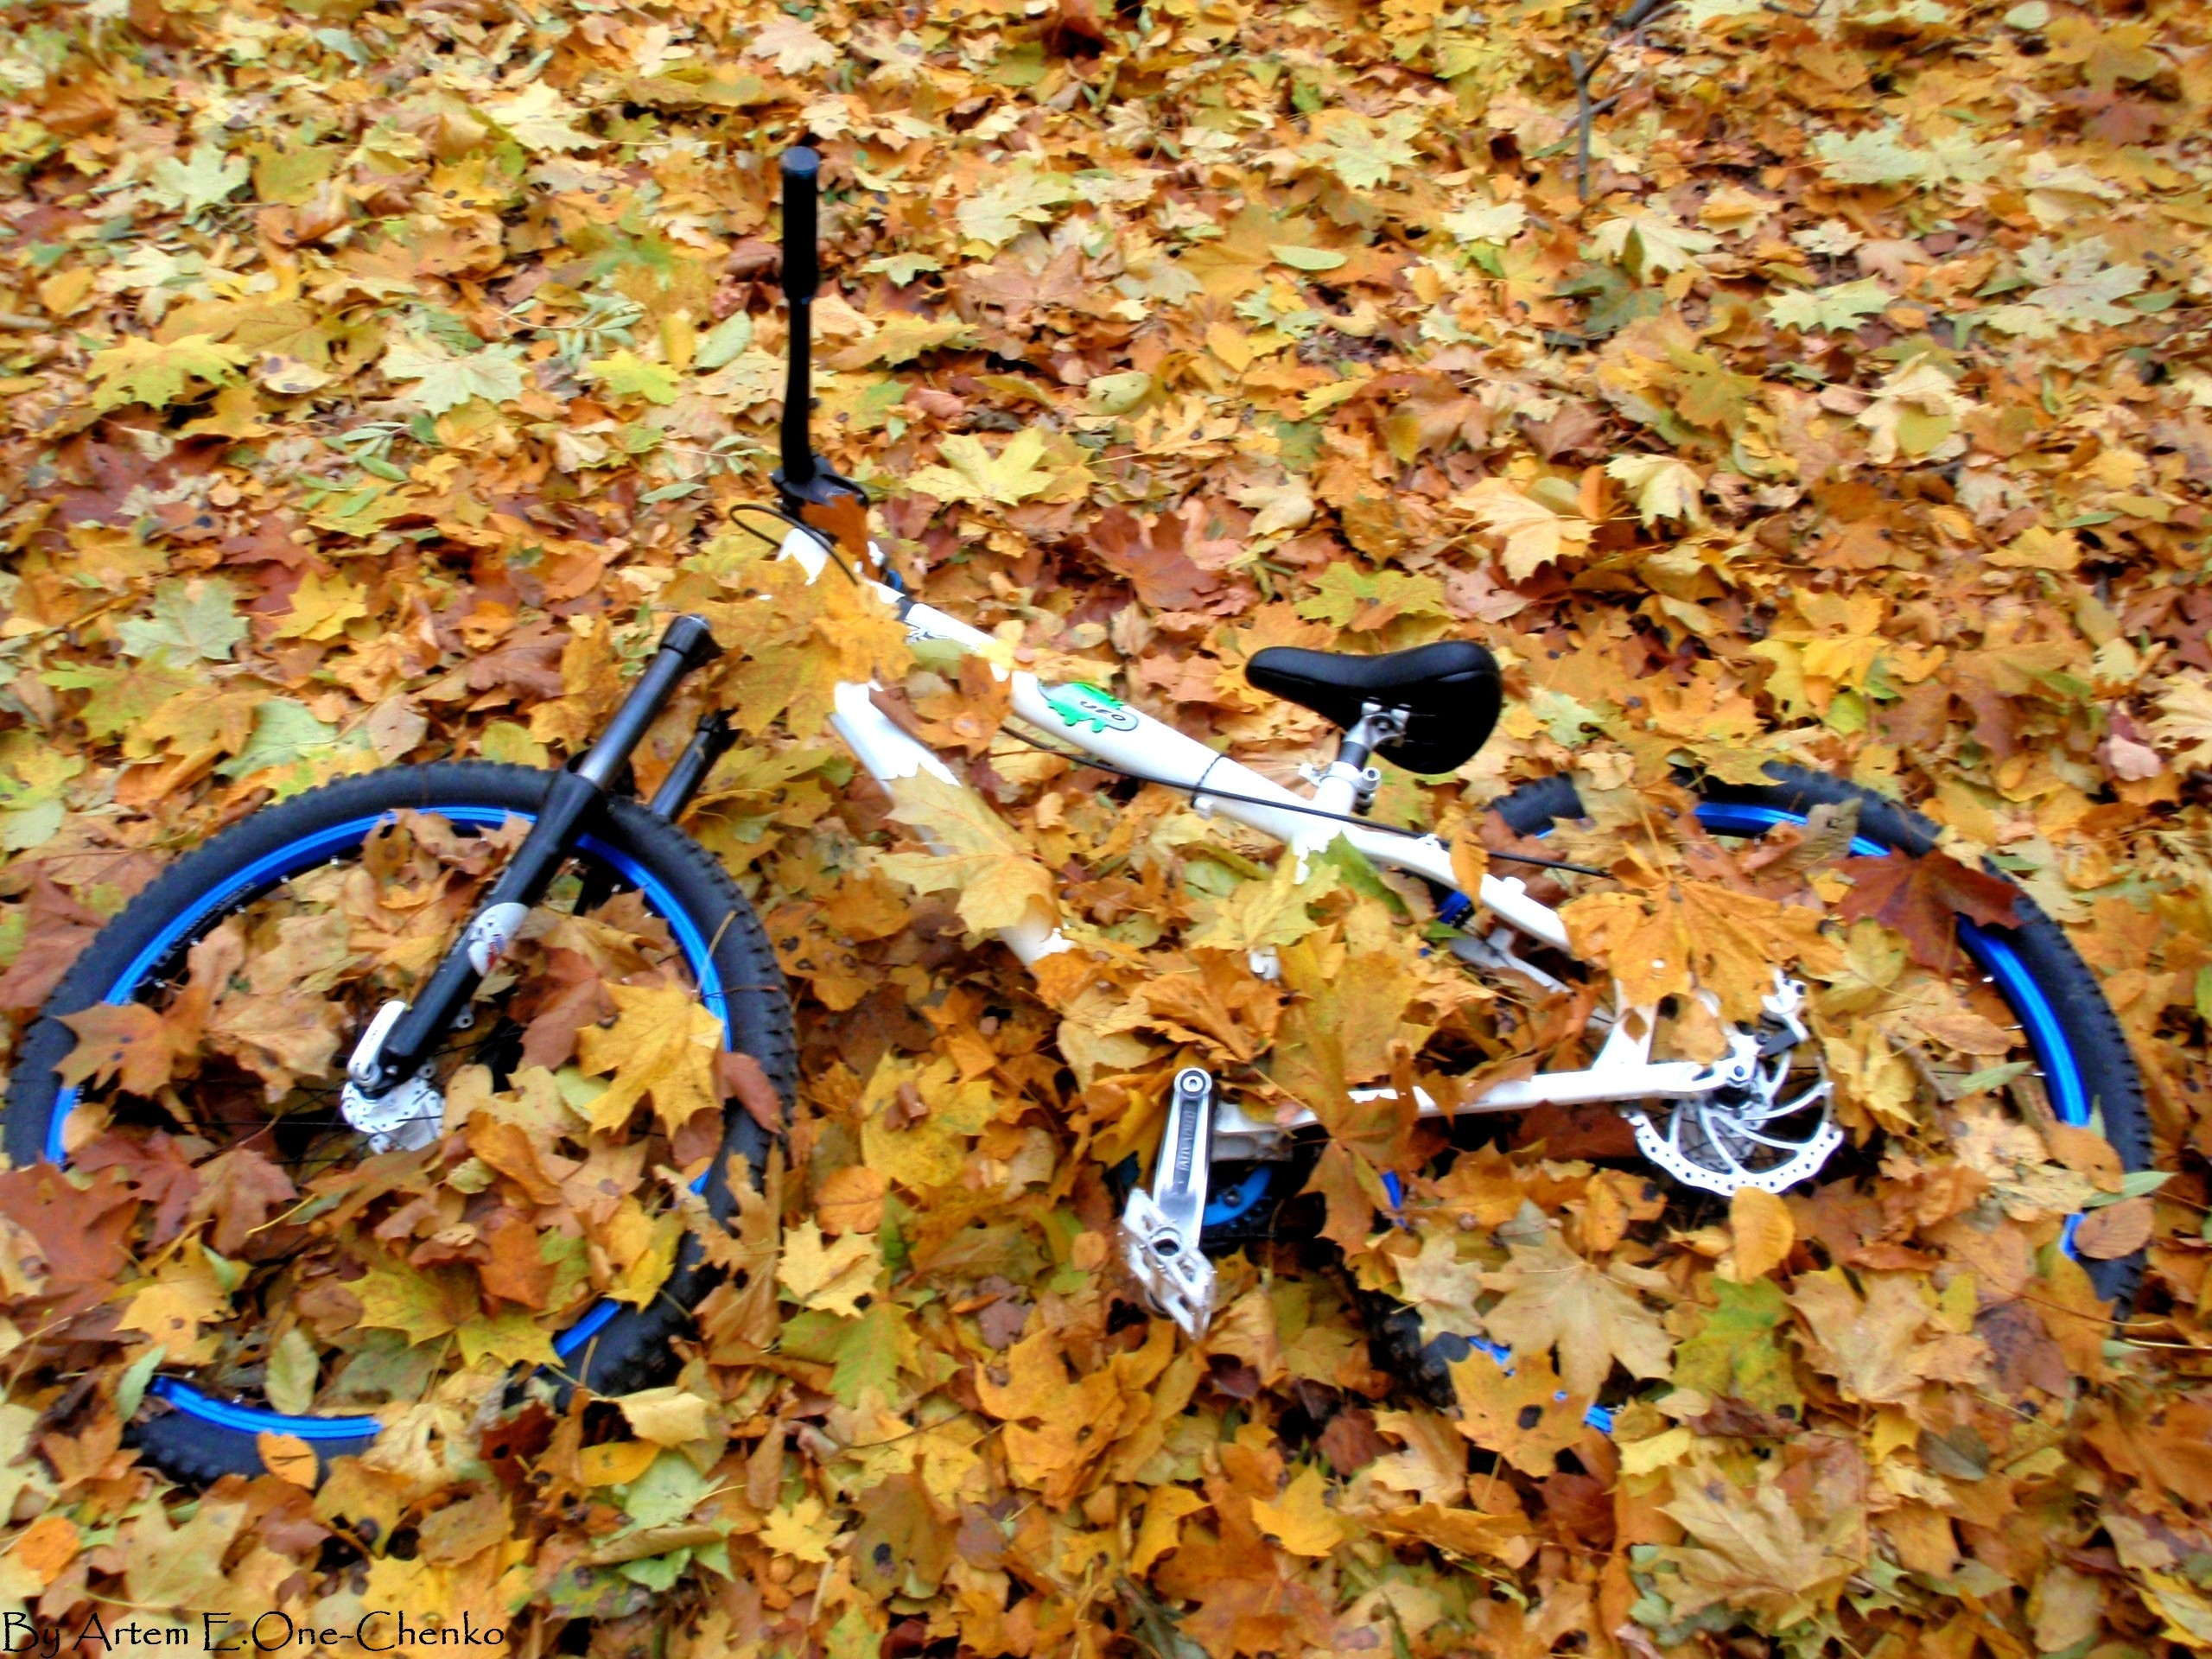 Ukraine cycle fallen leaves HD Wallpaper